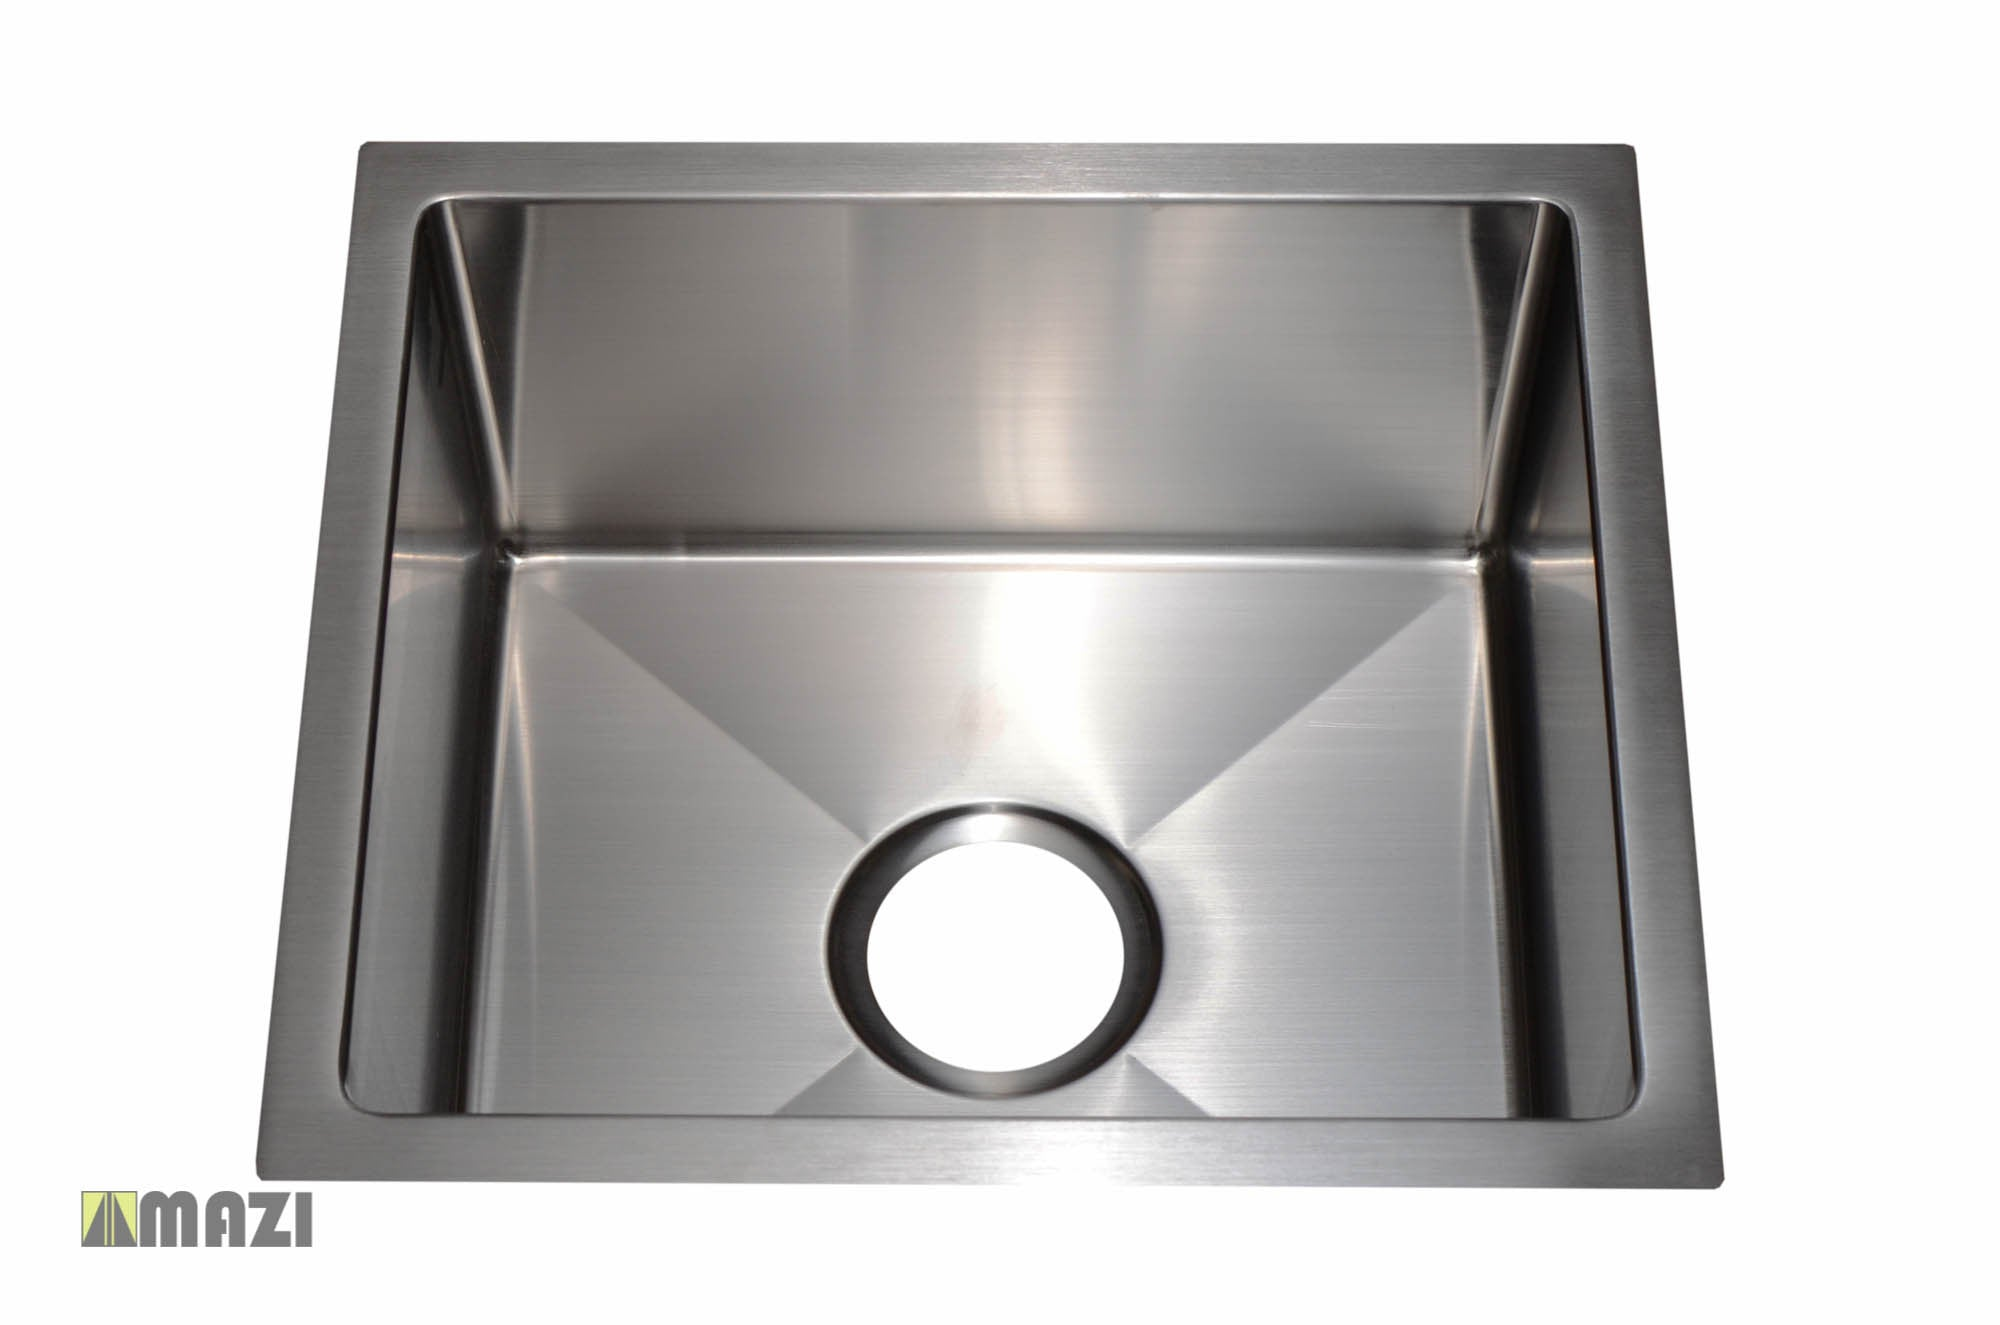 with sinks design stainless kitchen furniture ideas home best stunning sink worthy on interior undermount steel